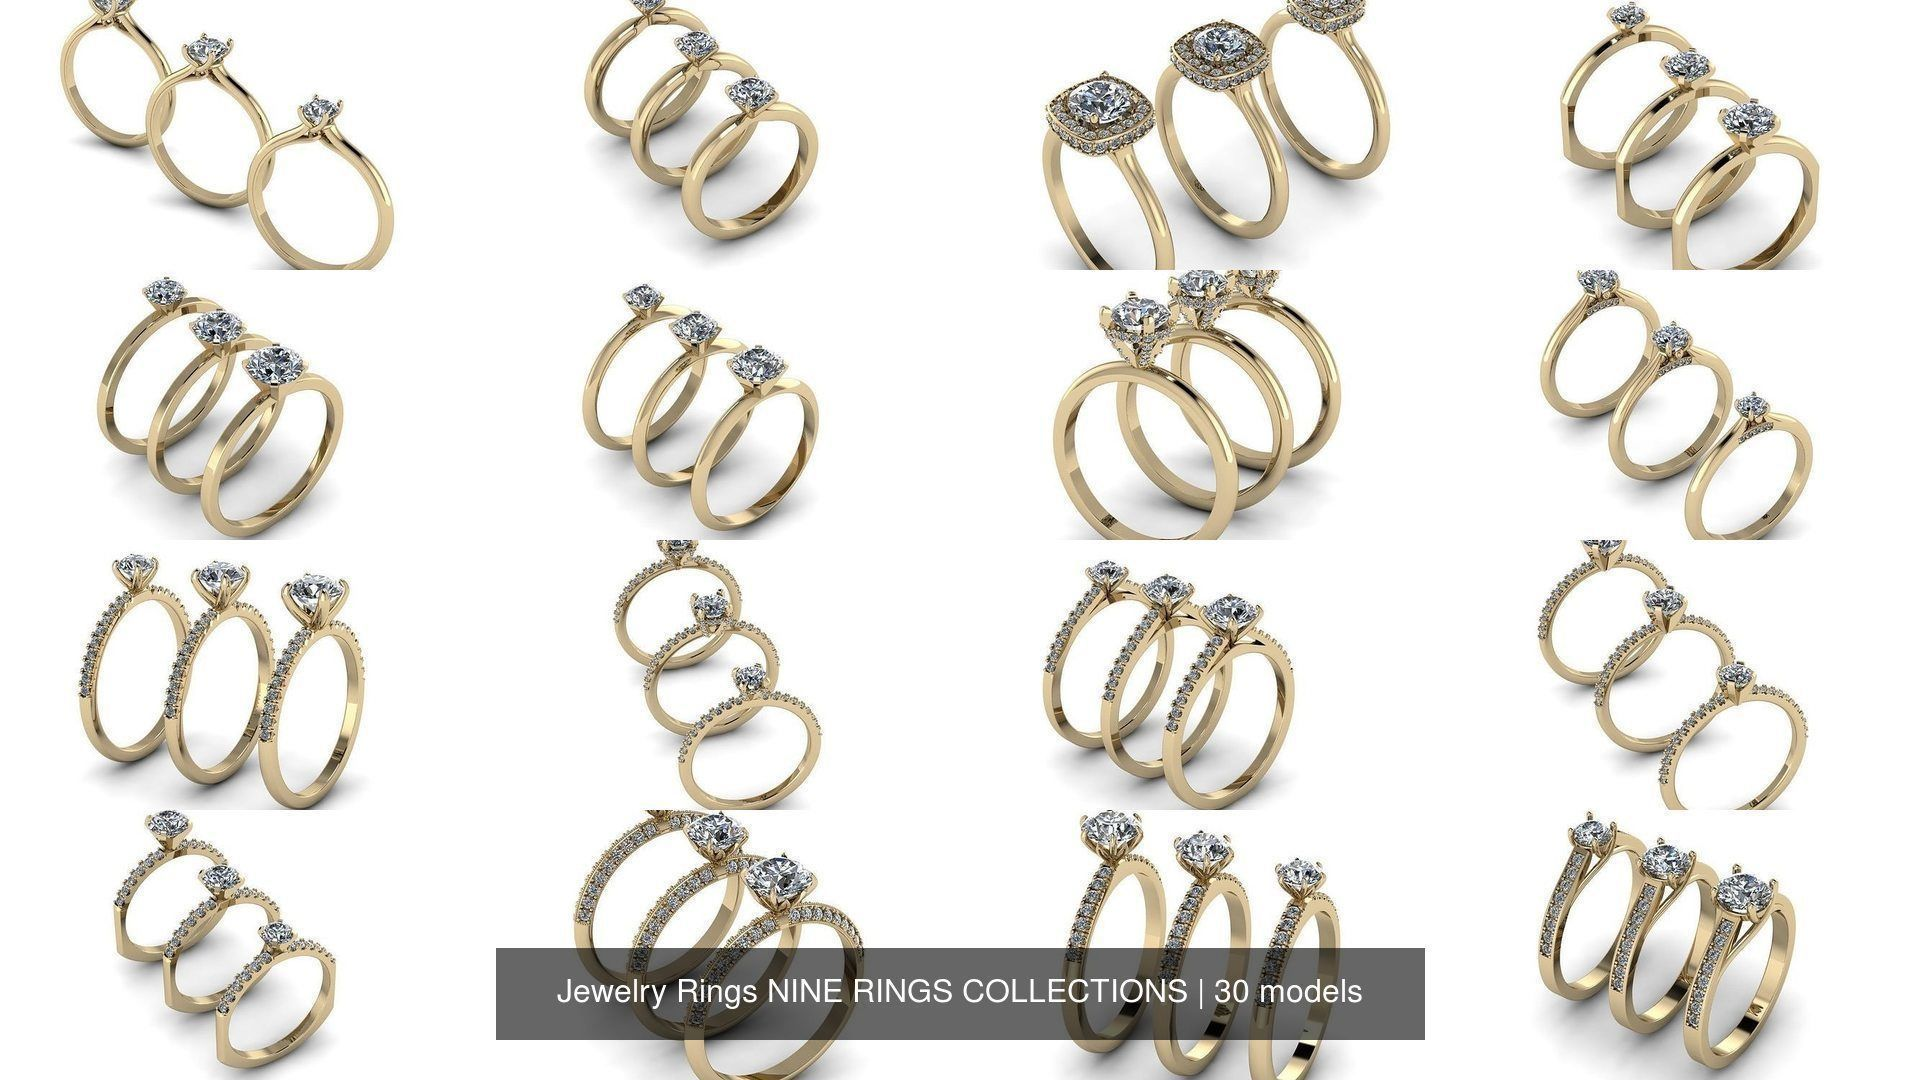 Jewelry Rings NINE RINGS COLLECTIONS